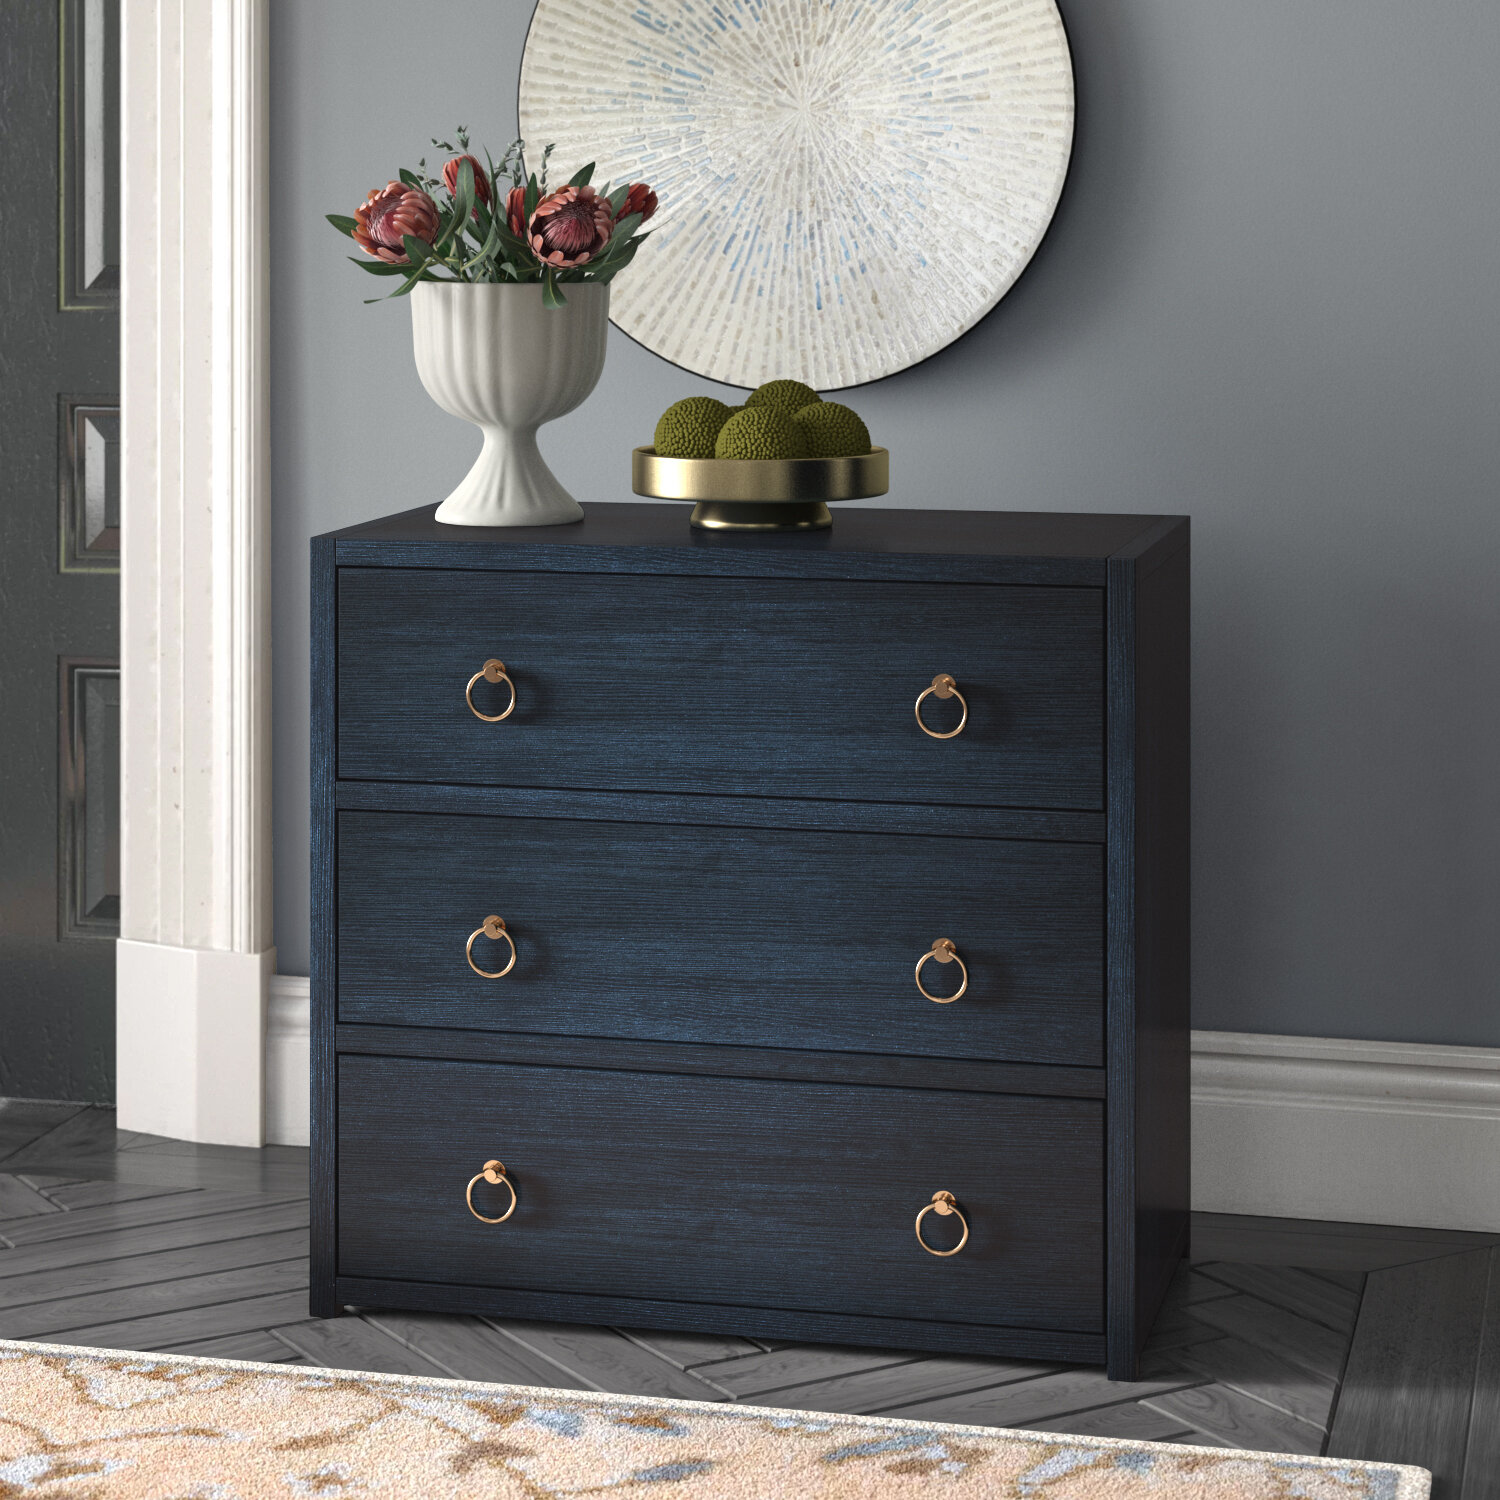 Clayford 3 Drawer Accent Chest Reviews Joss Main